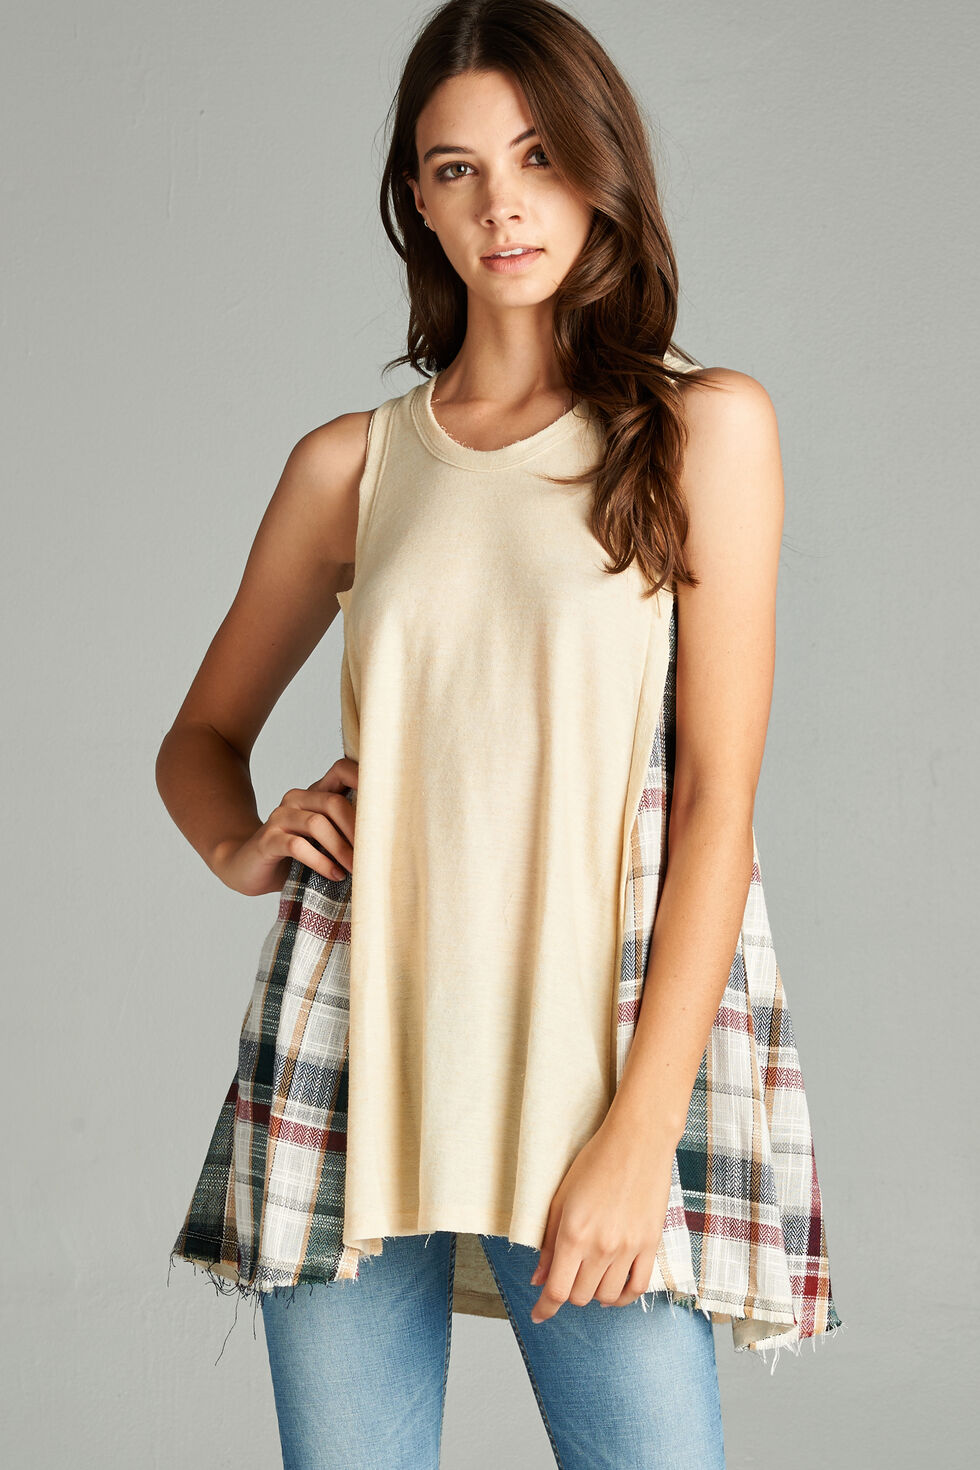 Hyku Women's Natural Plaid Contrast Tunic Top, Natural, hi-res